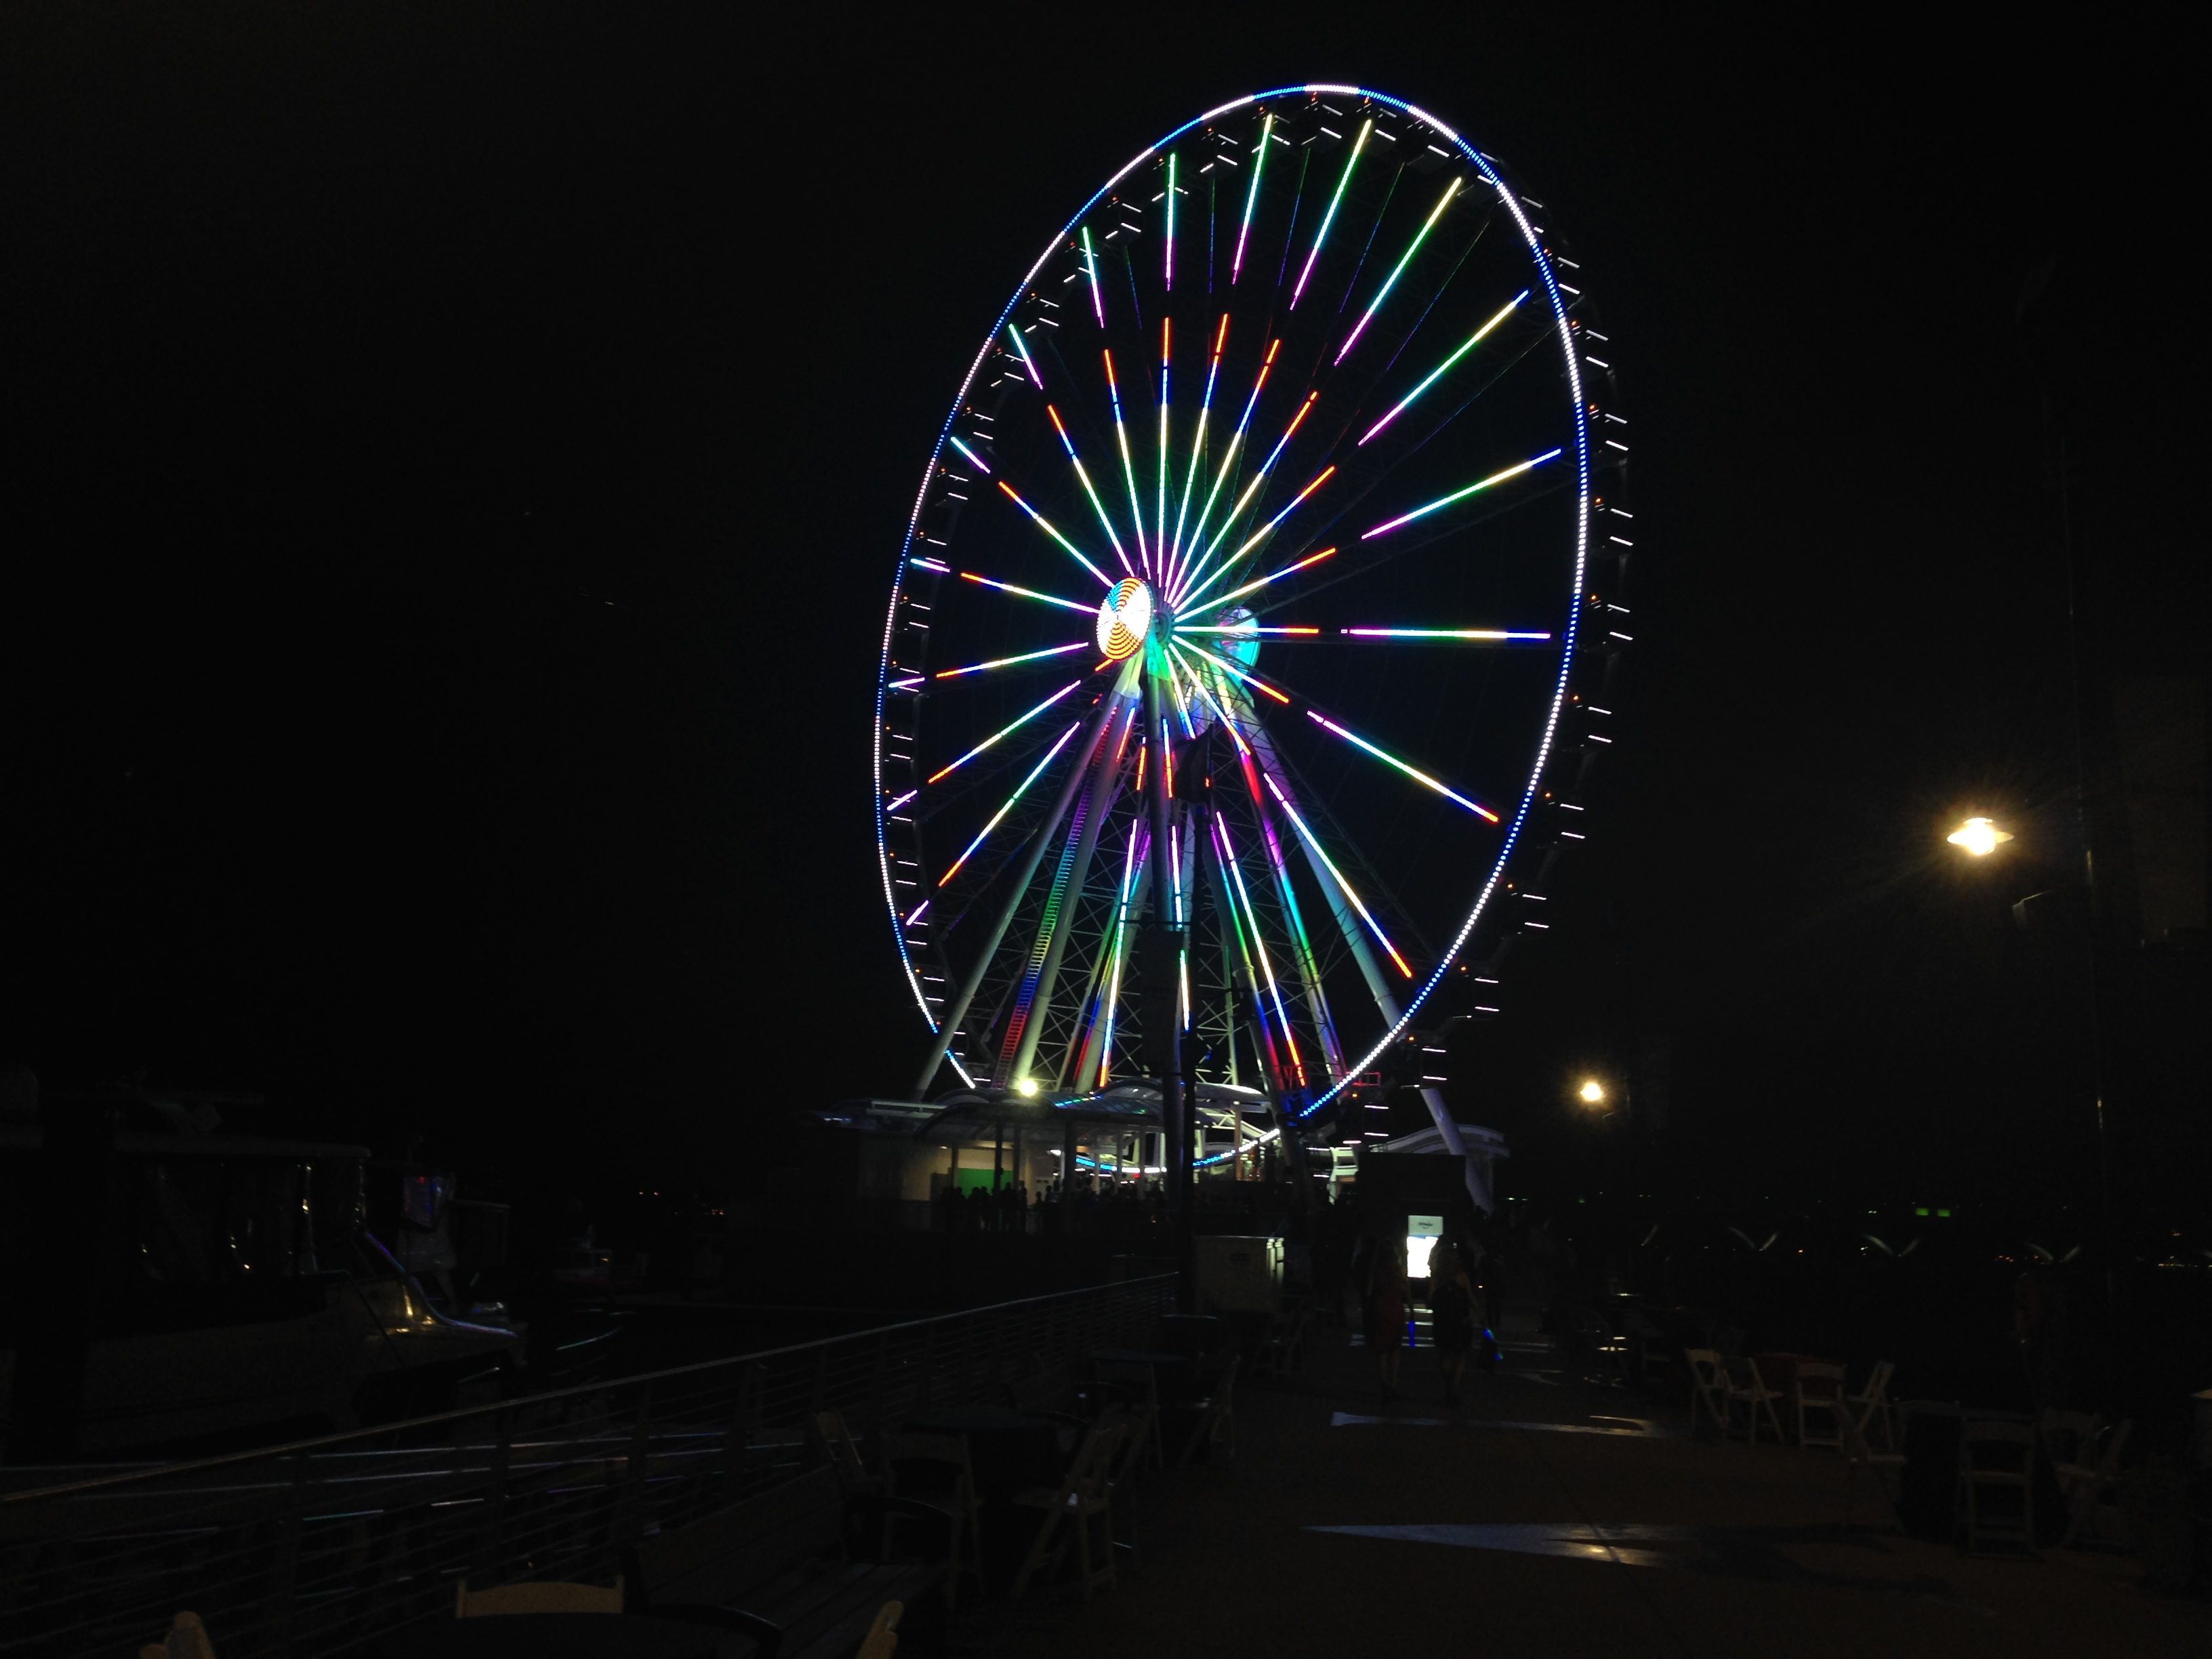 National Harbor's Capital Wheel to change color with 2016 election results